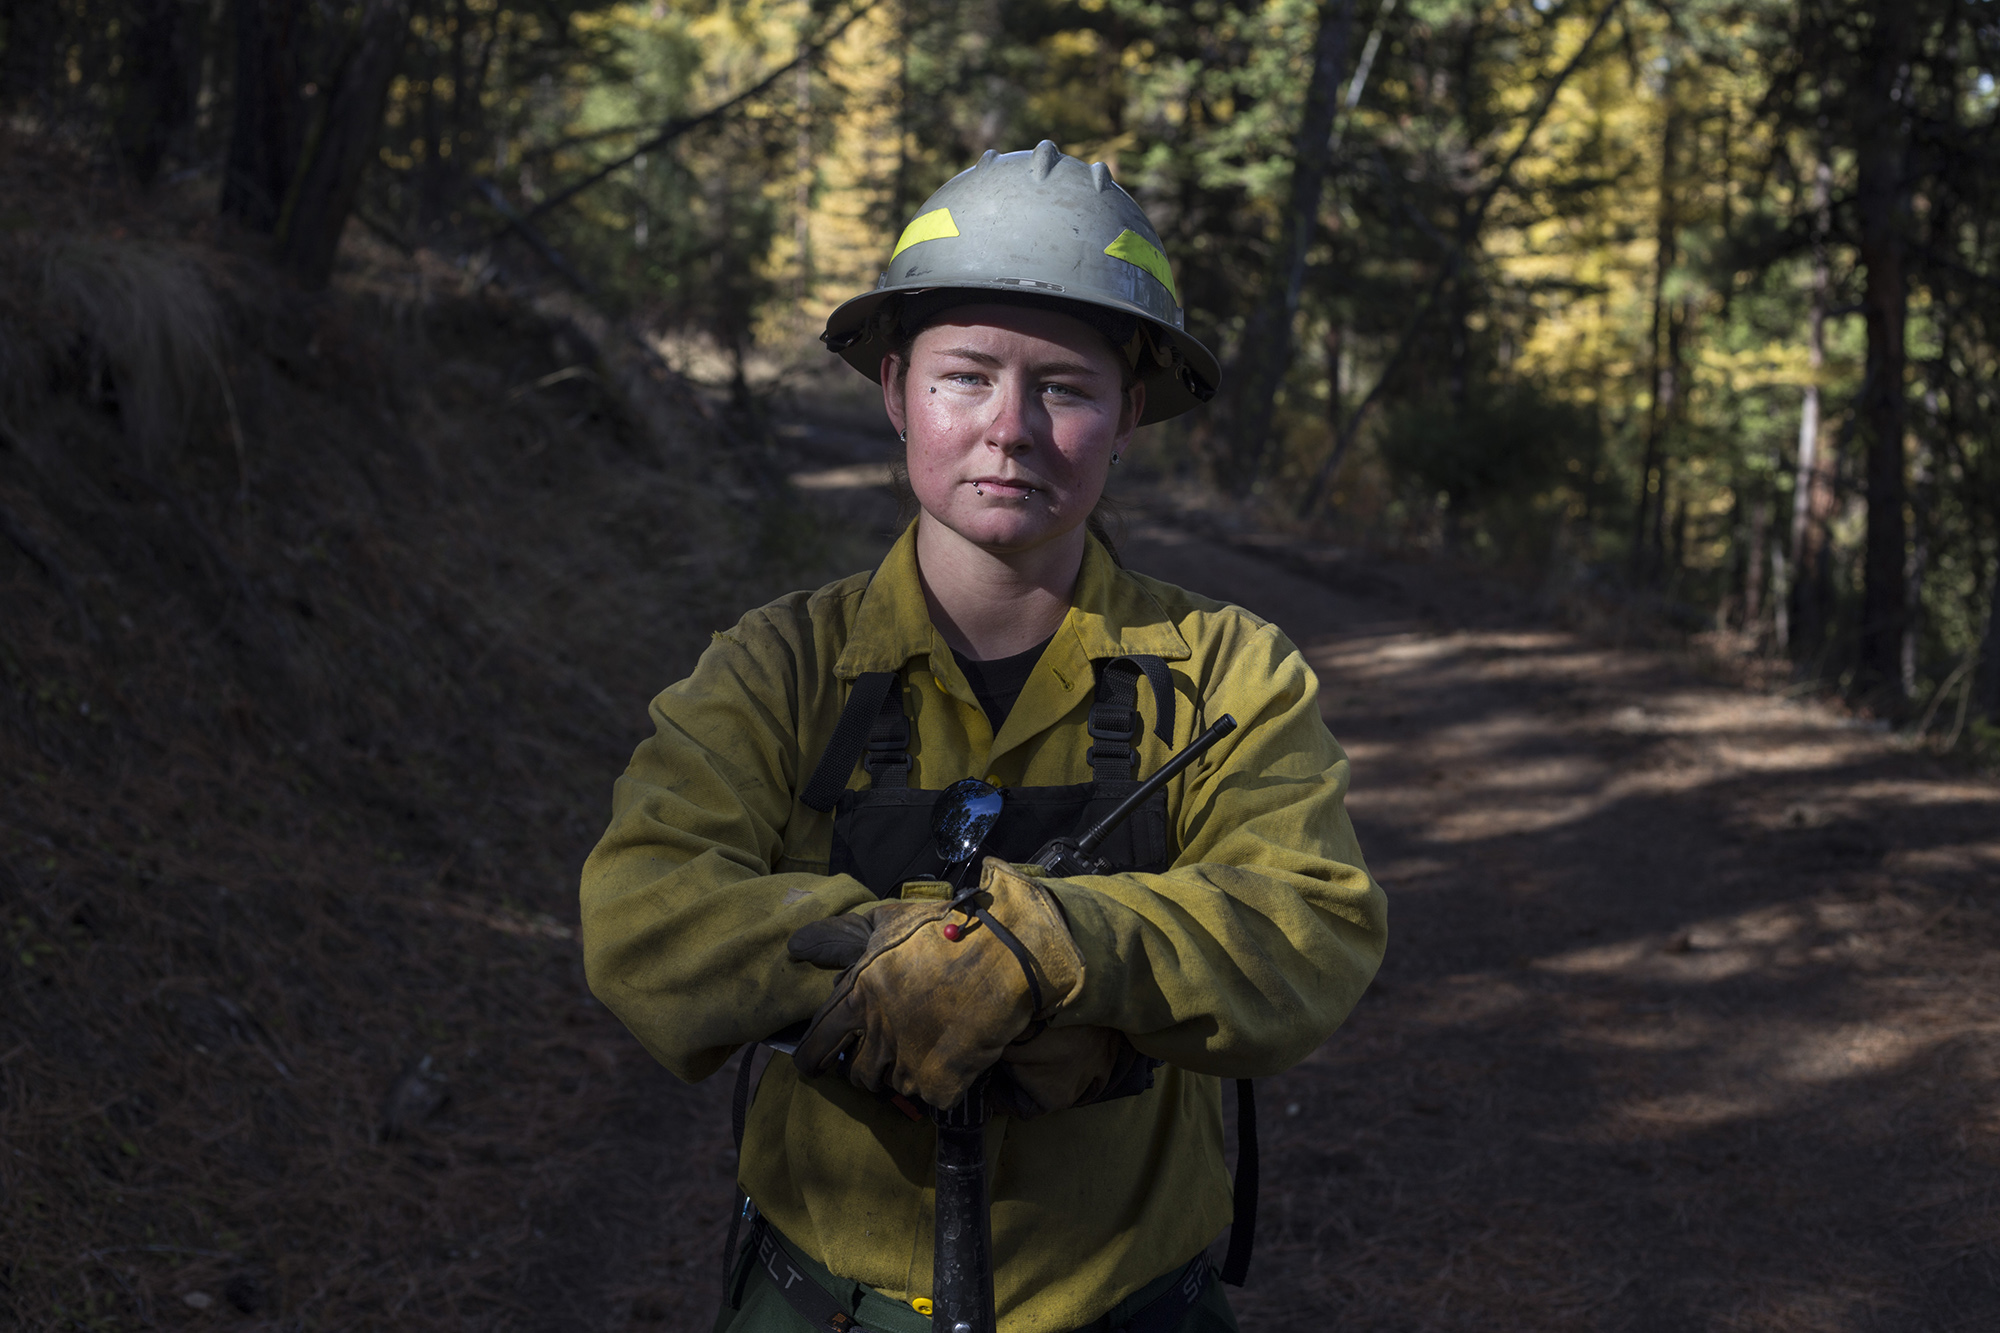 Lindsay Burland Roullier, 27, an enrolled member of the Confederated Salish and Kootenai Tribe, a forest technician and wild and fire fighter, at the site of a controlled burn she had been working on outside of Elmo, Mont., on Tuesday, October 24, 2017. Roullier's father worked as a member of the CSKT Division of Fire for nearly 22 years when he was killed by a drunk driver coming home from work. She said she started working in the Division of Fire to honor his legacy. (Brittany Greeson/GroundTruth)